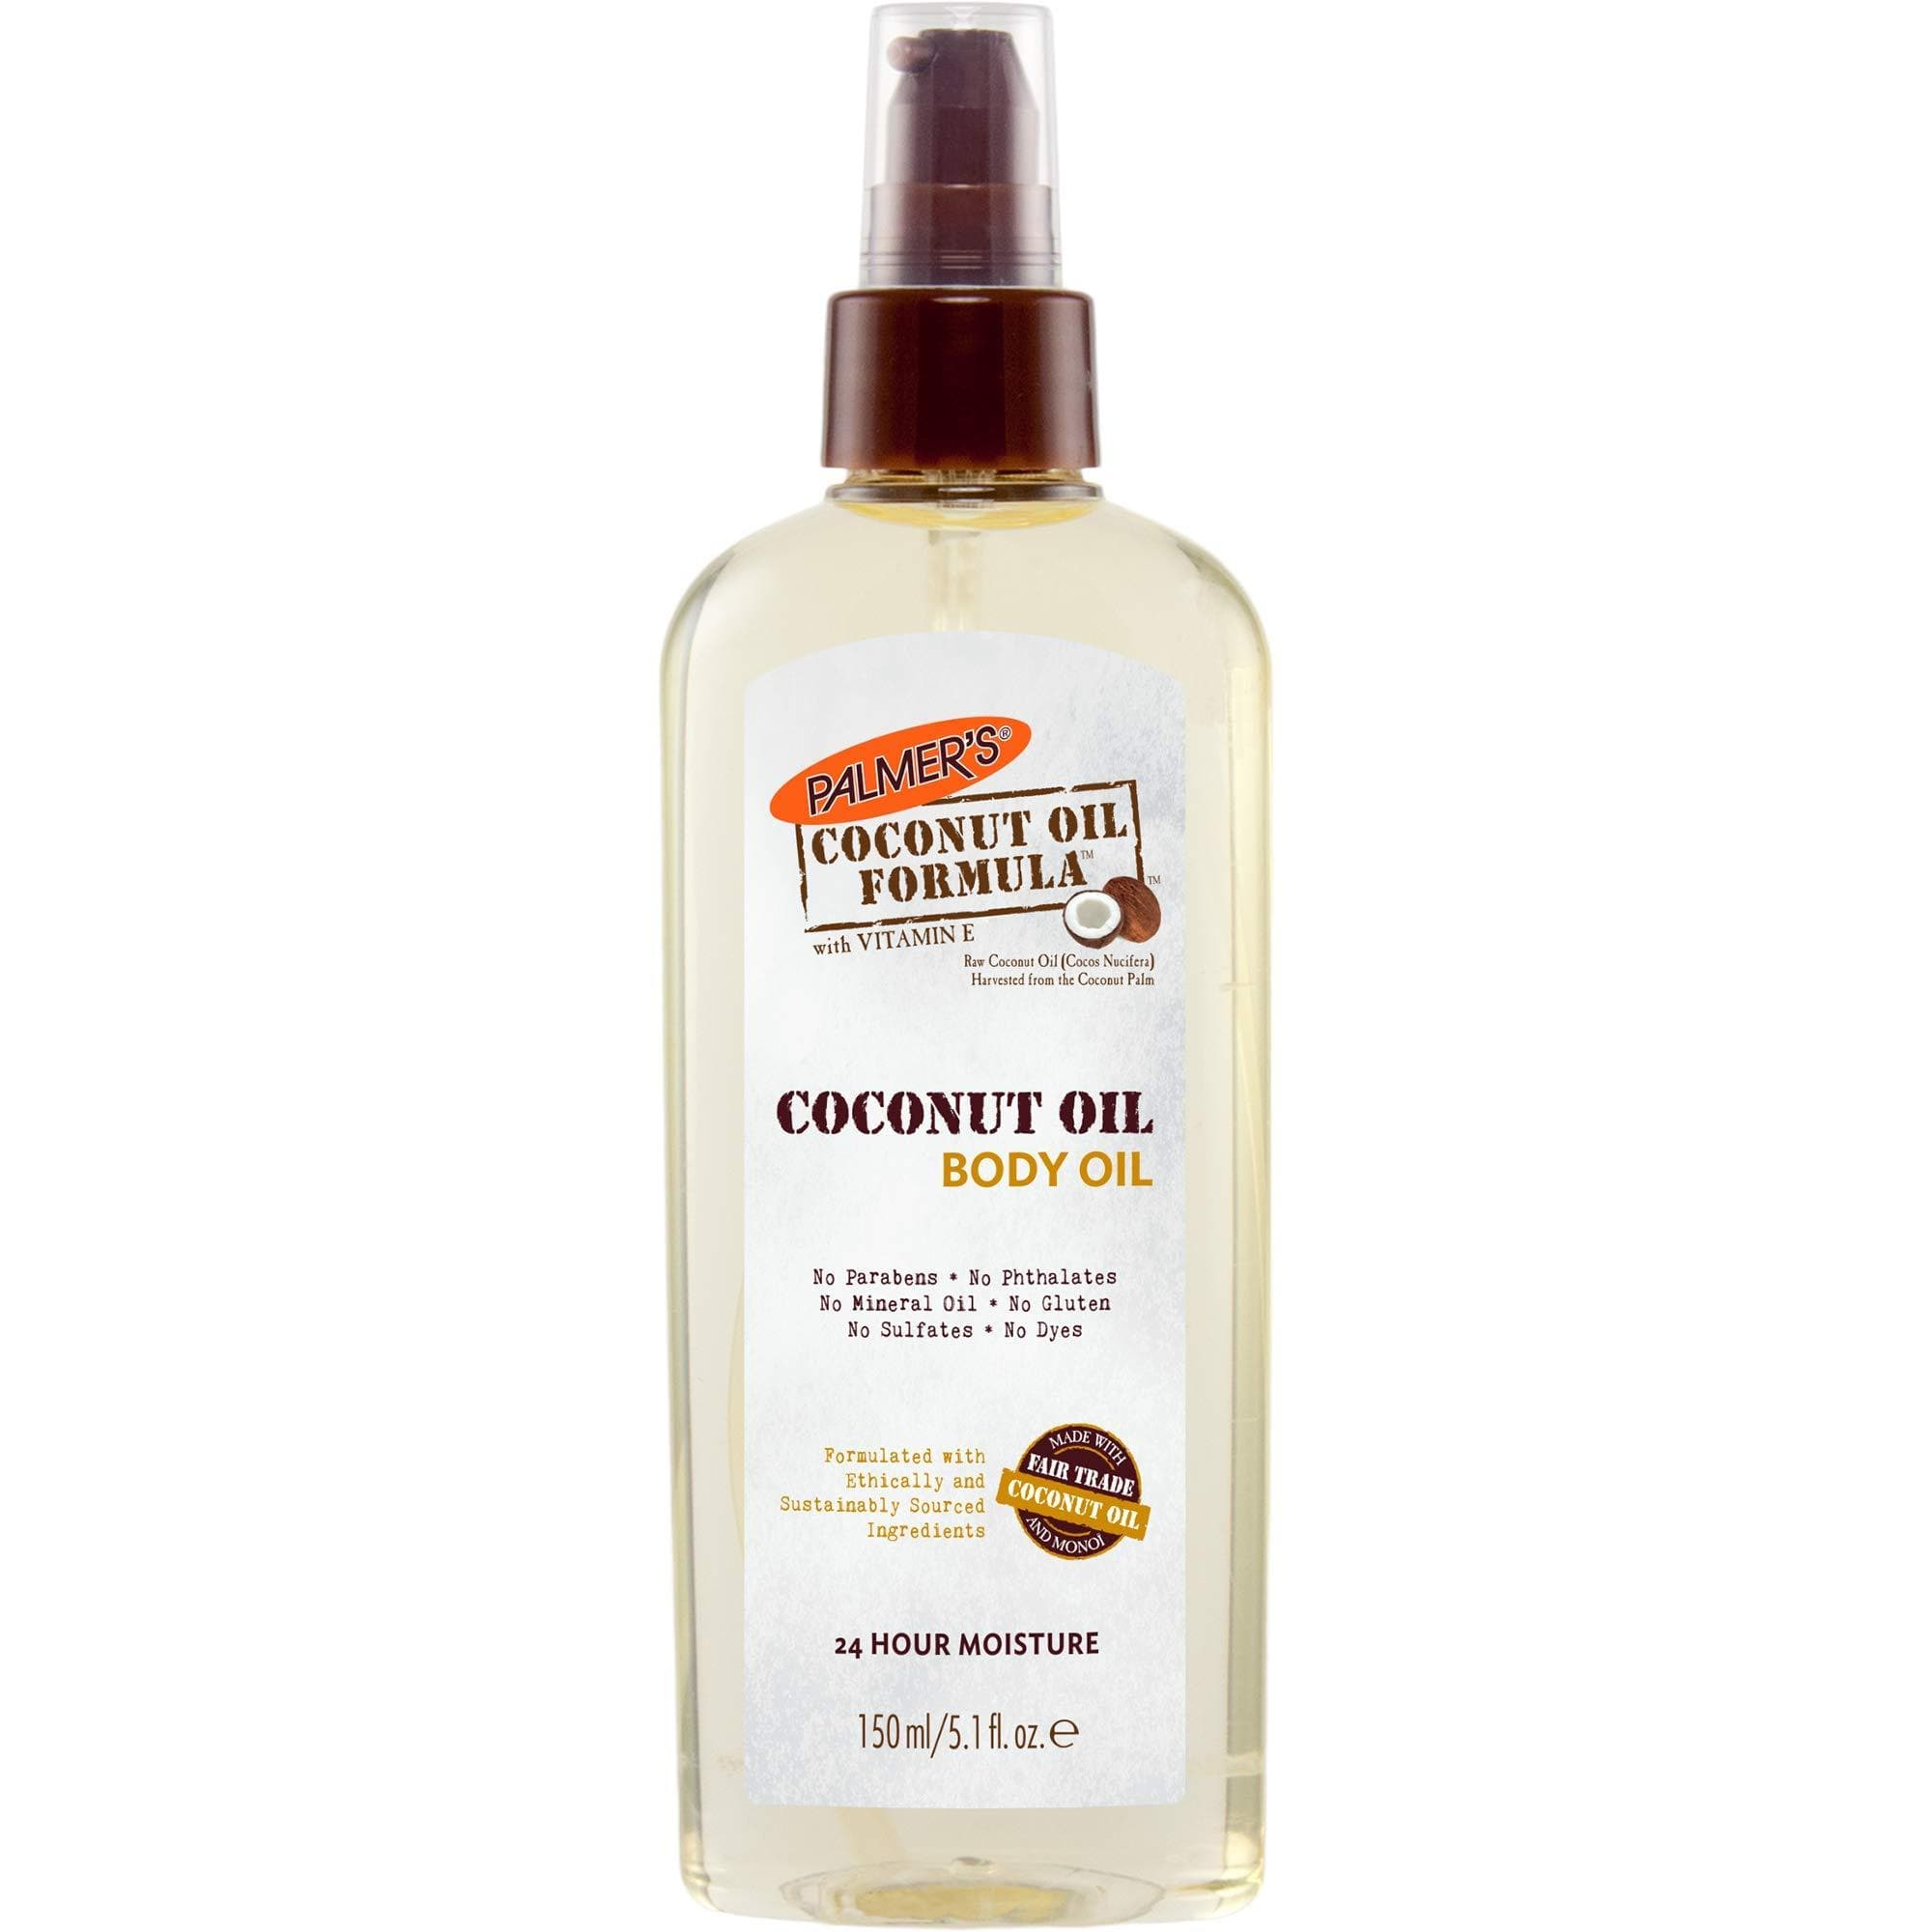 PALMER'S Coconut Oil Formula Body Oil, 150ml